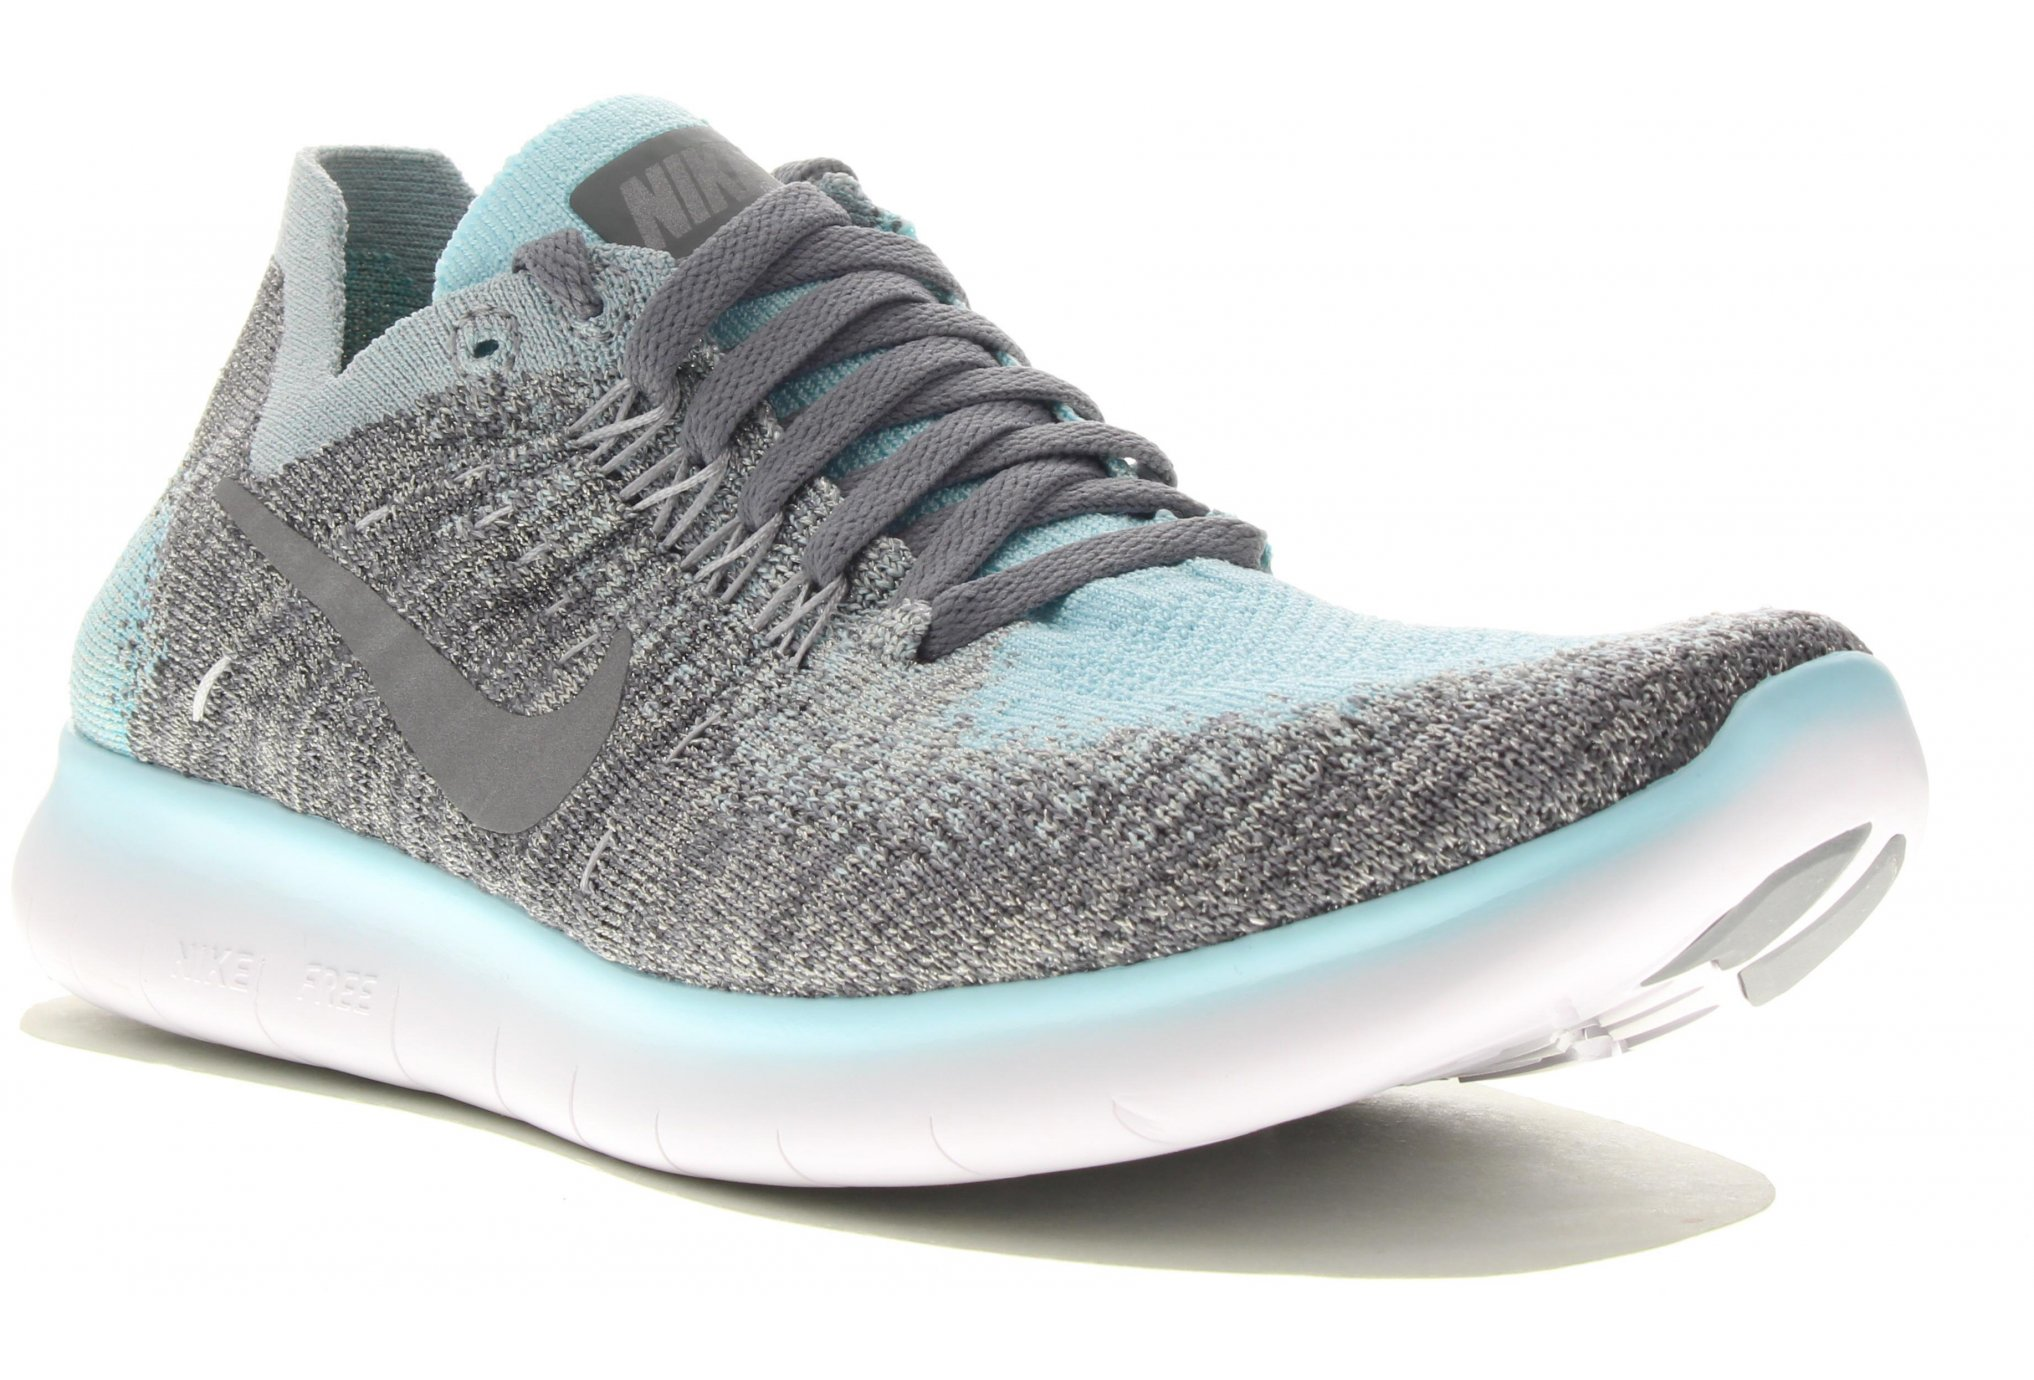 Nike Free RN Flyknit GS Chaussures running femme